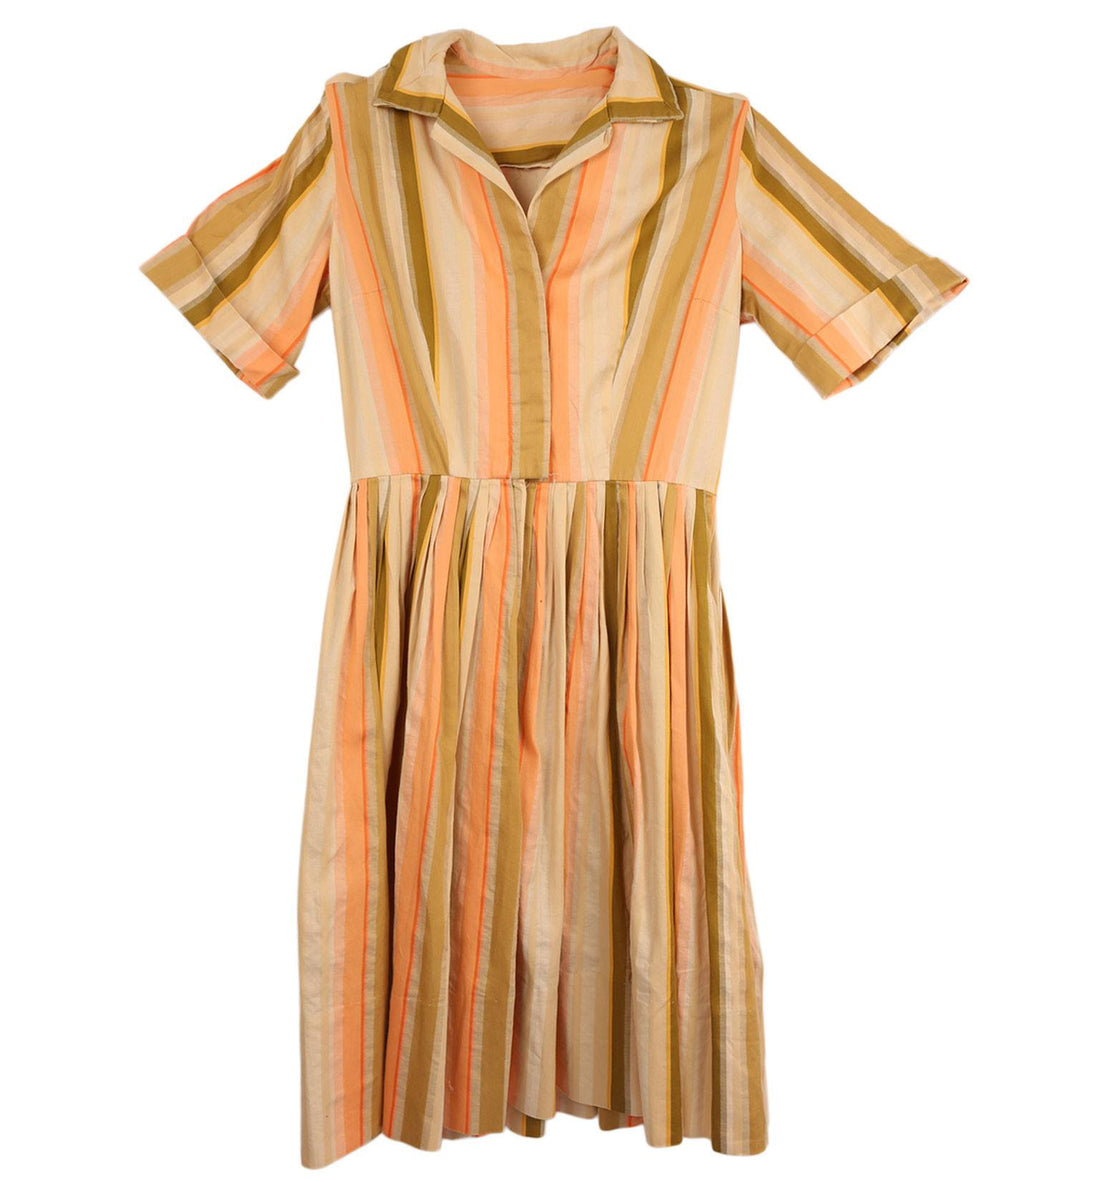 Vintage 60s Pastel Dress - Vintage: Women's: Apparel - Iron and Resin